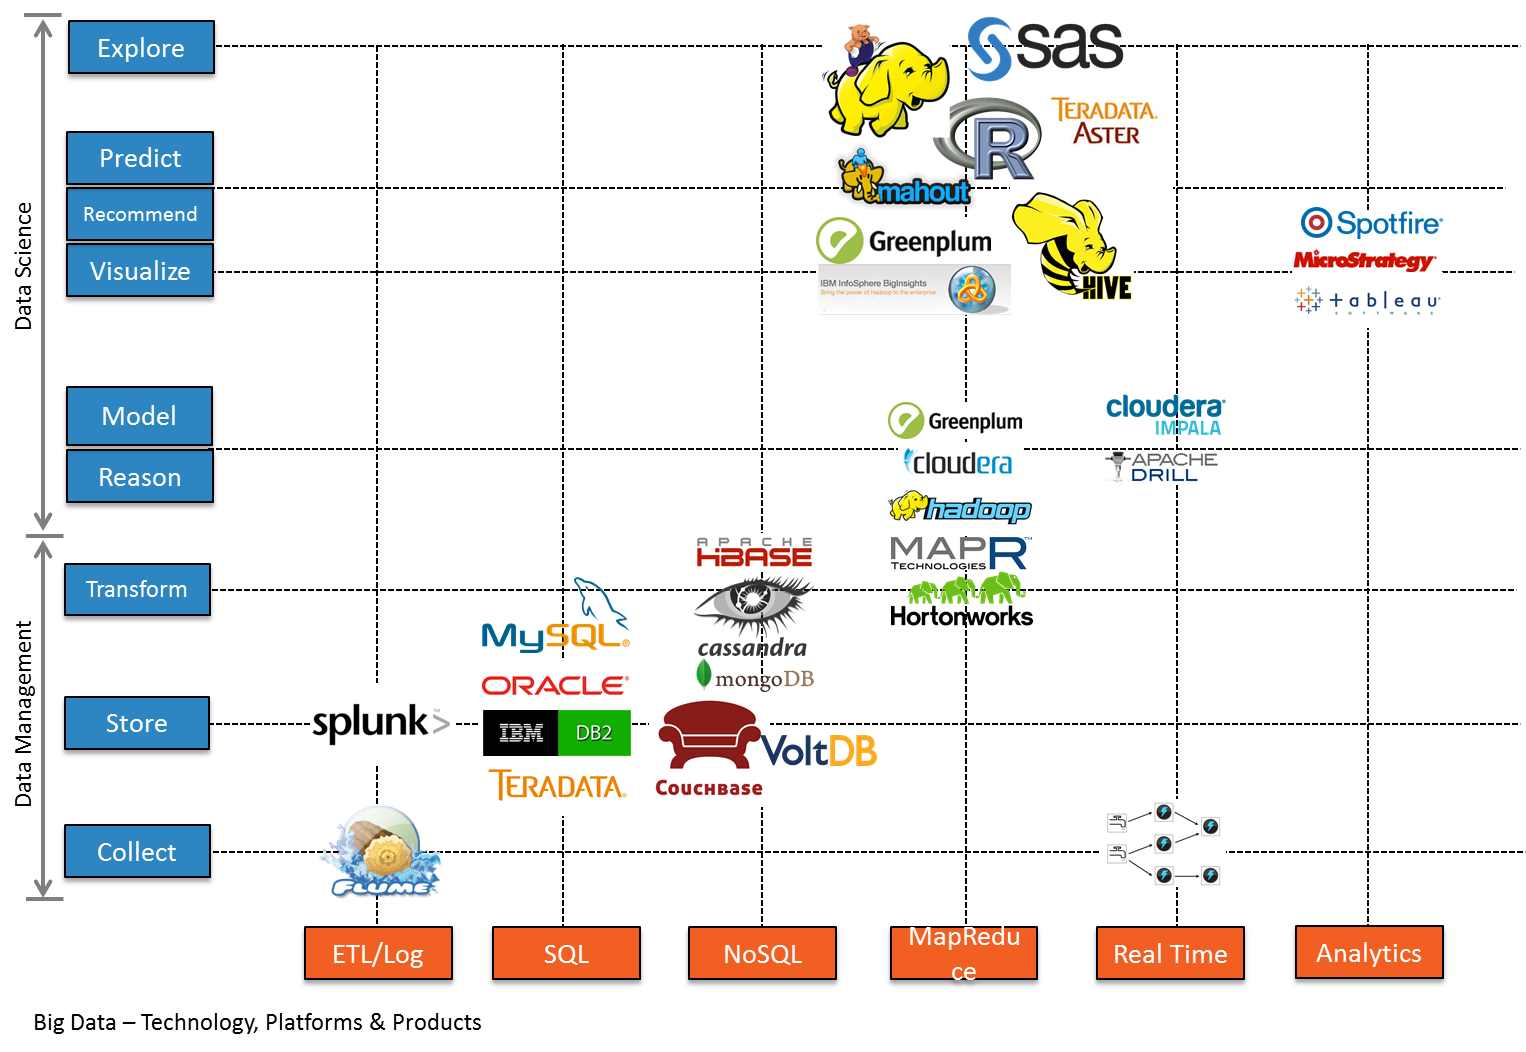 Big Data Technologies Platforms and Products Pipeline Image